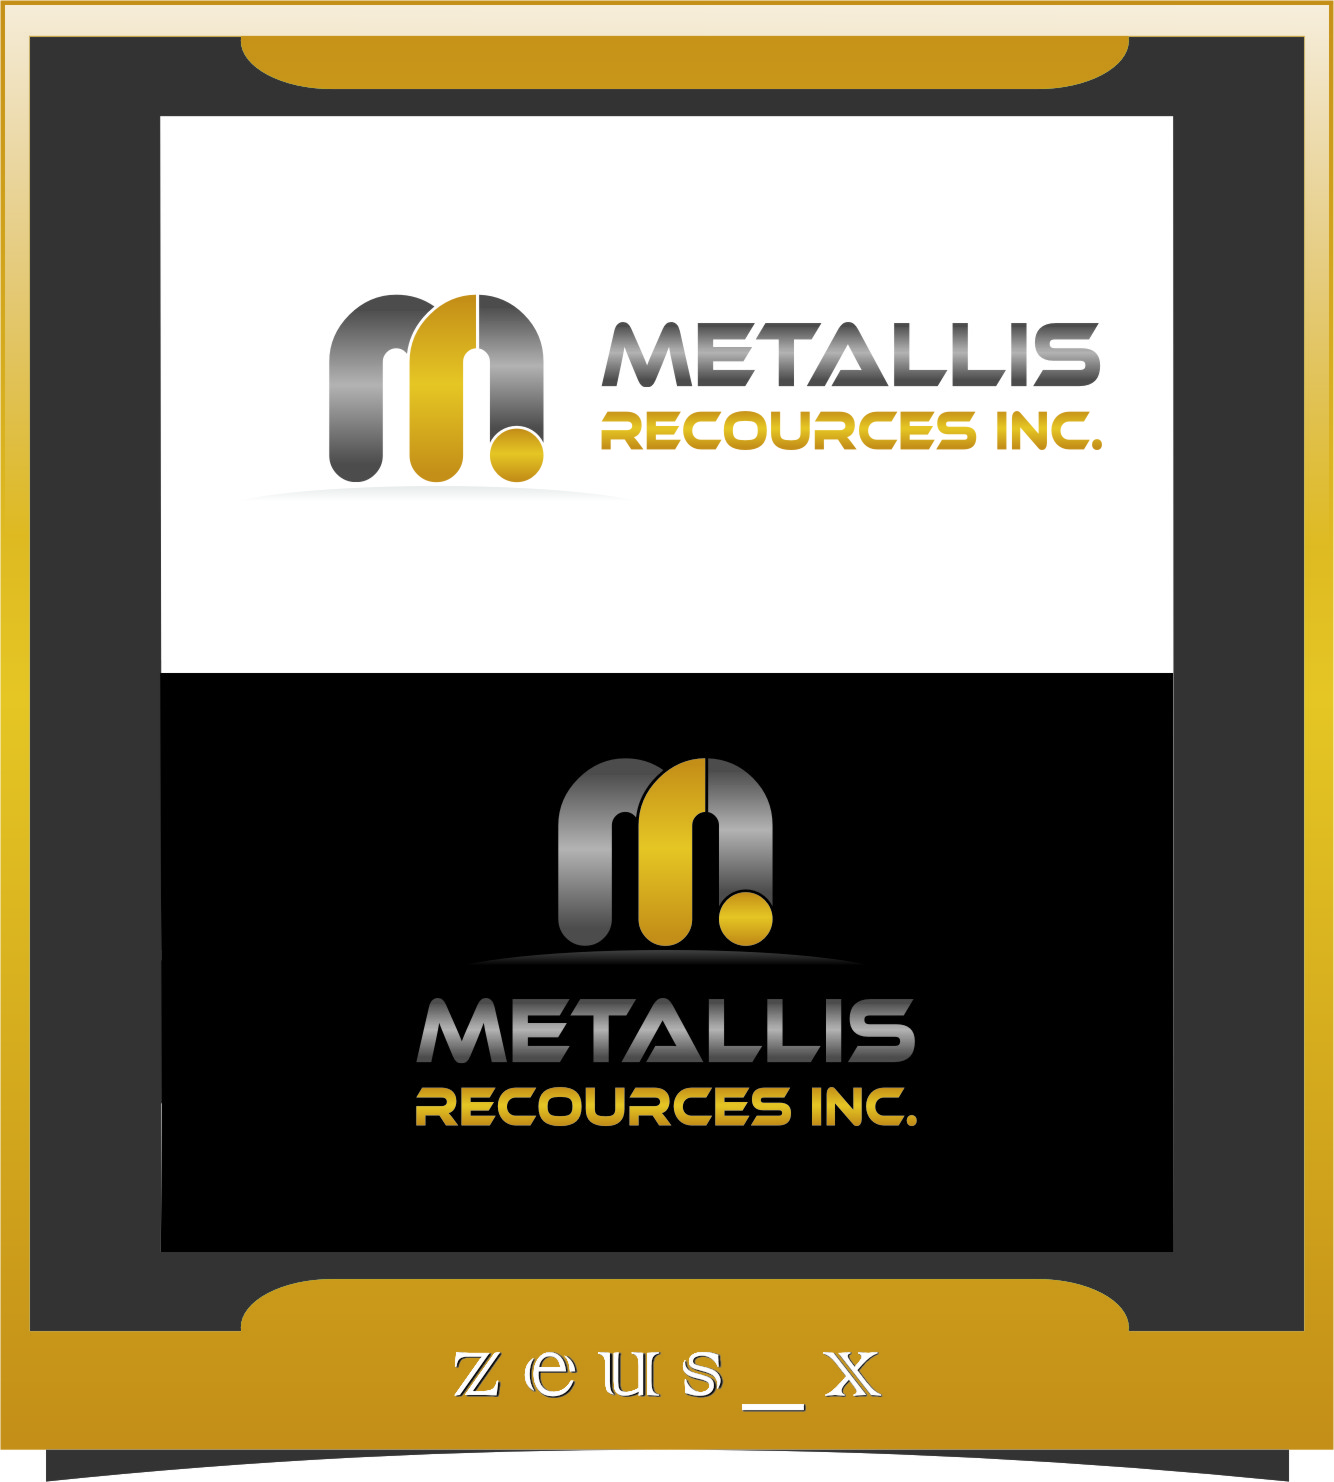 Logo Design by RasYa Muhammad Athaya - Entry No. 103 in the Logo Design Contest Metallis Resources Inc Logo Design.